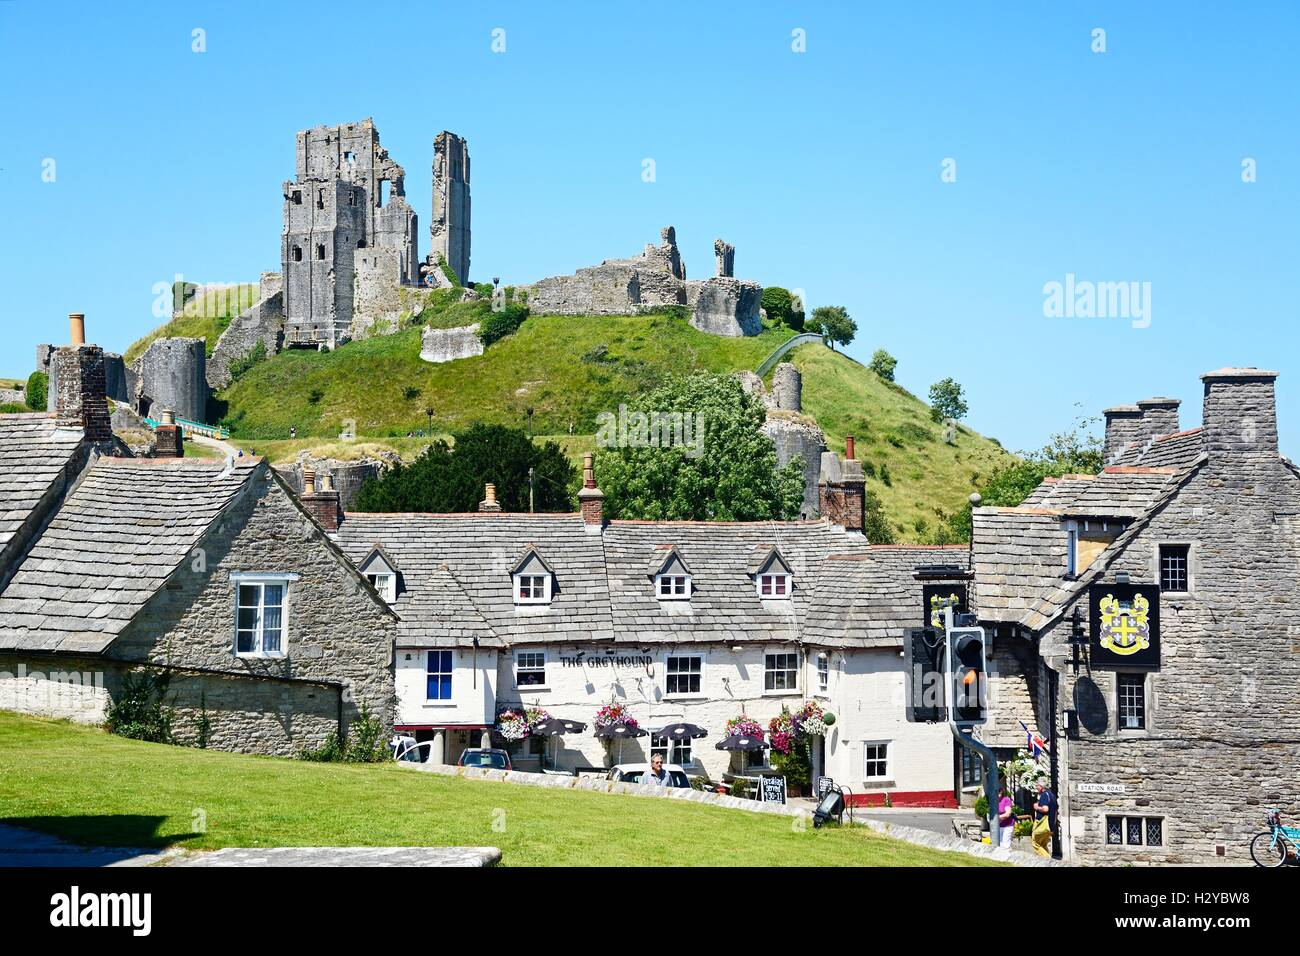 View of Corfe castle seen above The Greyhound Pub, Corfe, Dorset, England, UK, Western Europe. - Stock Image